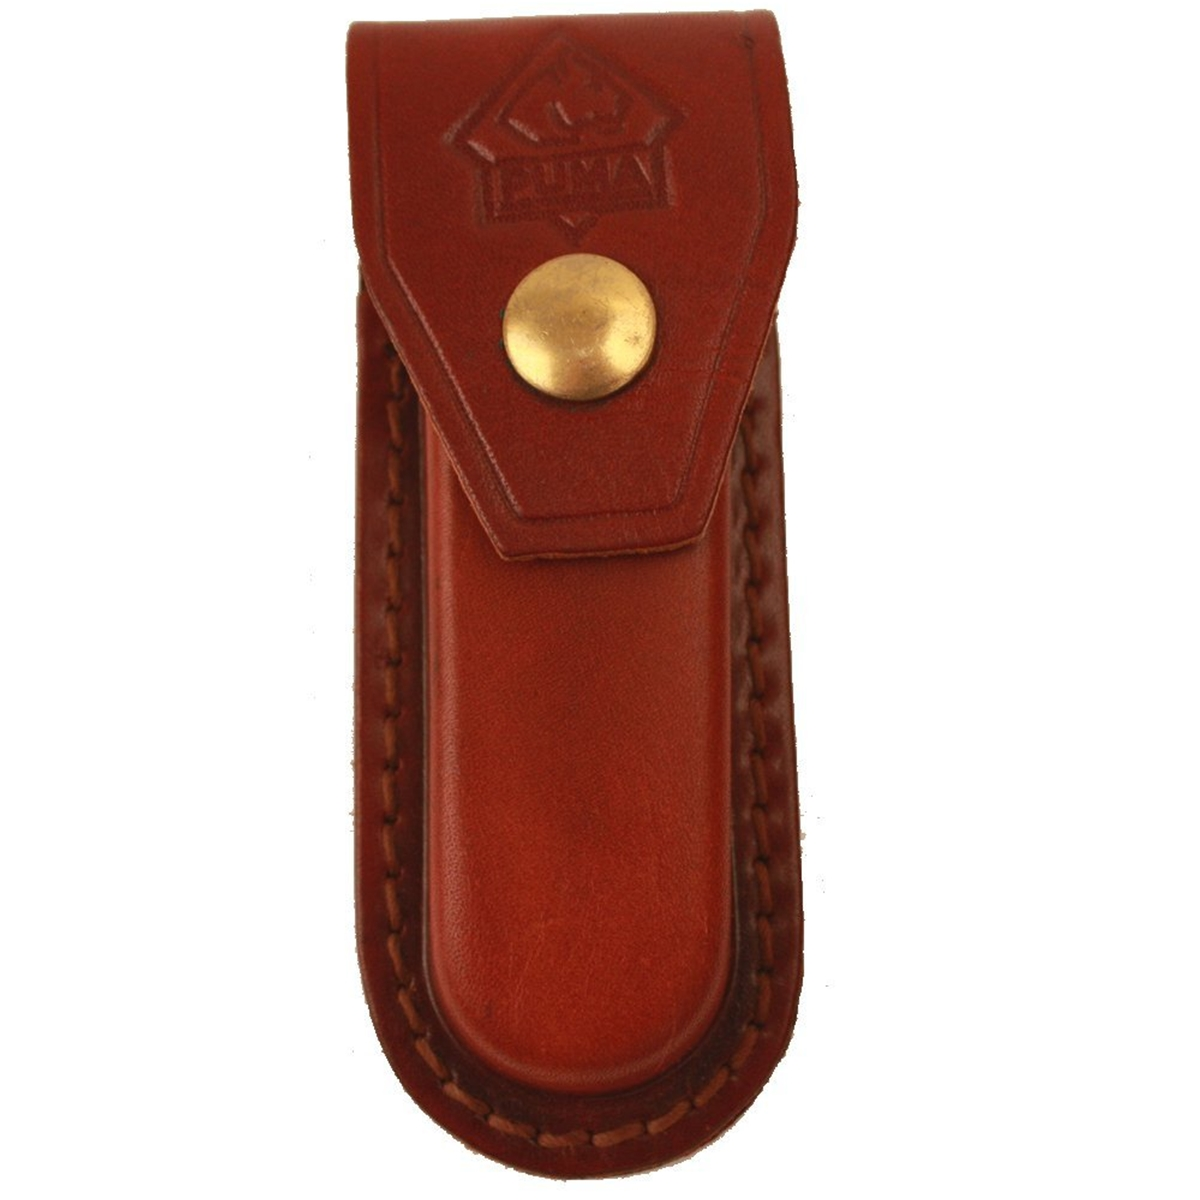 "Puma High Quality Replacement 3"" Folding Pocket Knife Leather Belt Sheath"